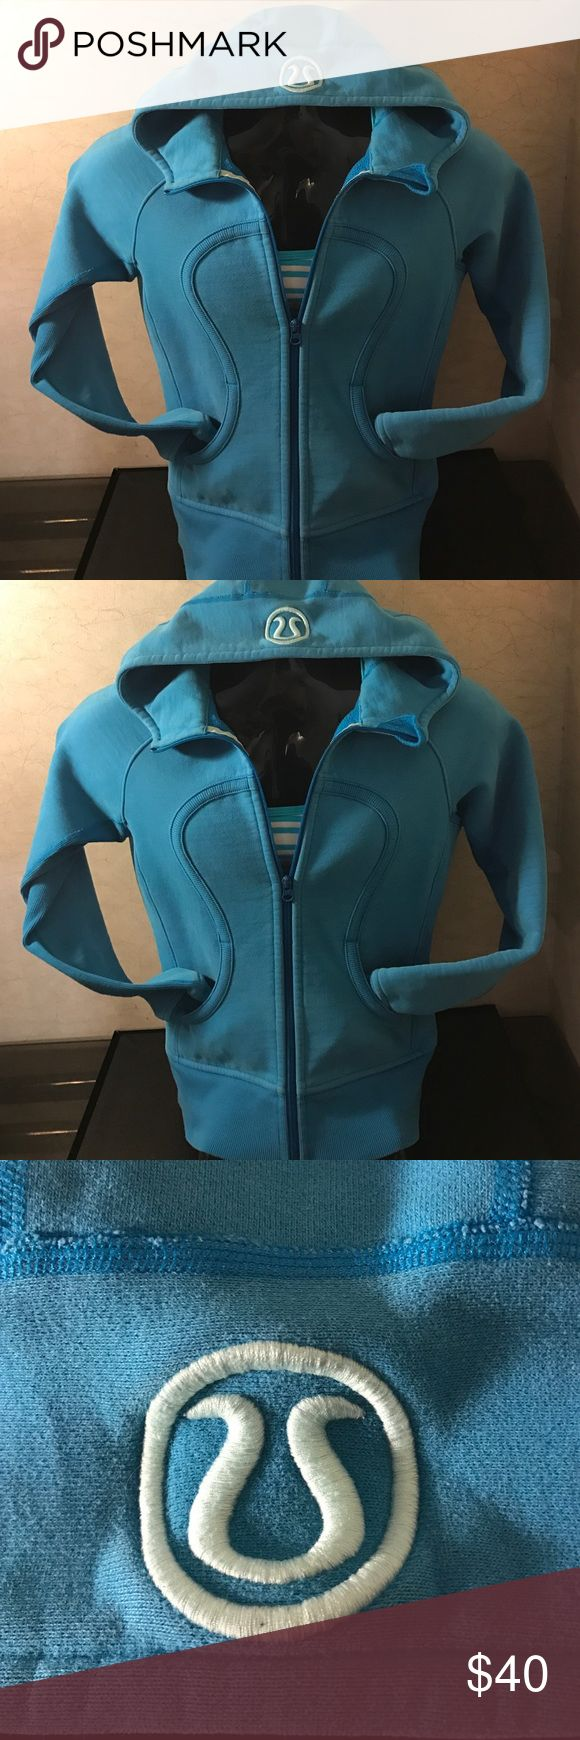 WOMEN BLUE LULULEMON ZIP UP HOODIE SCUBIA COAT SZM Women's like new light blue scuba zip up hoodie size medium in excellent condition very thick high quality hoodie very fashionable!!! lululemon athletica Tops Sweatshirts & Hoodies